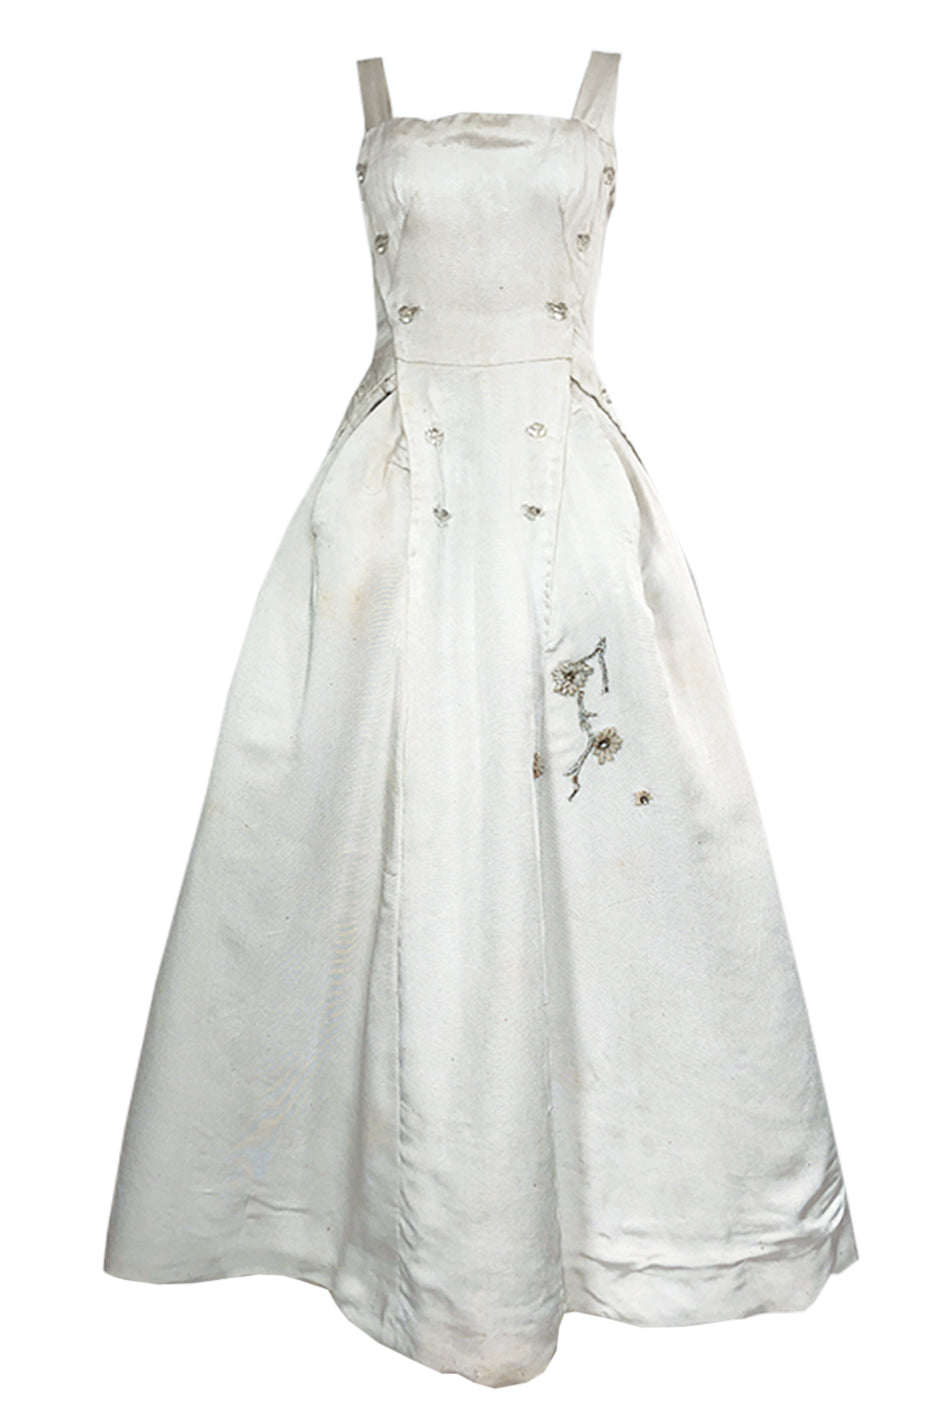 21dde1f4d4a Fall 1952 Christian Dior Haute Couture Ivory Silk Button Dress w Underskirts